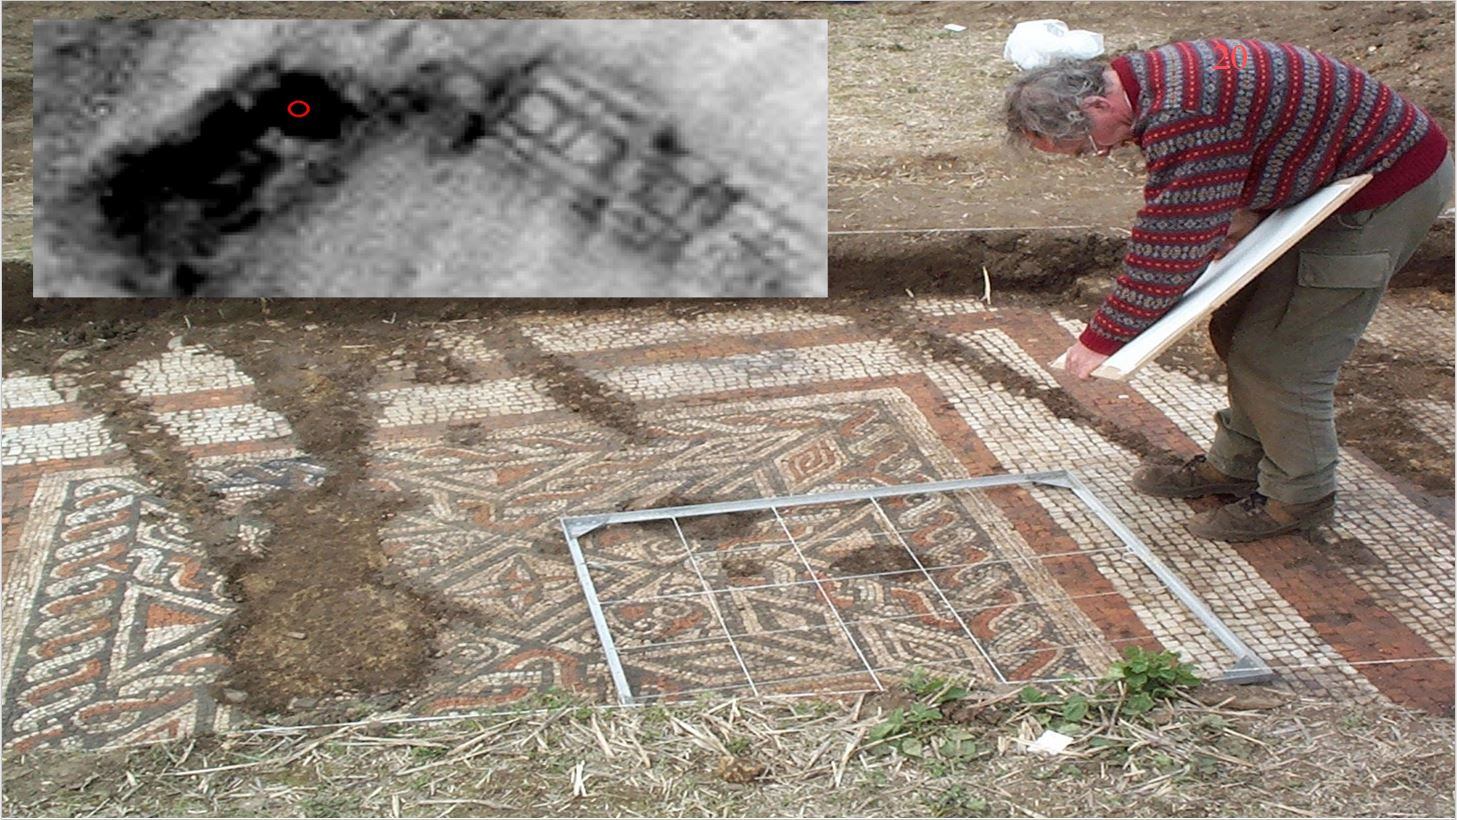 Mosaic  – resistance survey showing a Roman villa. The red circle shows the area where the trial trench was located. The villa has two wings - in the top right of the data image the rooms and corridors are visible and the indications are that the floors are simply beaten earth between stone / flint walls. By contrast, the wing on the left of the plot shows 'solid' floors – and these proved to be intact mosaics, albeit damaged by recent ploughing.